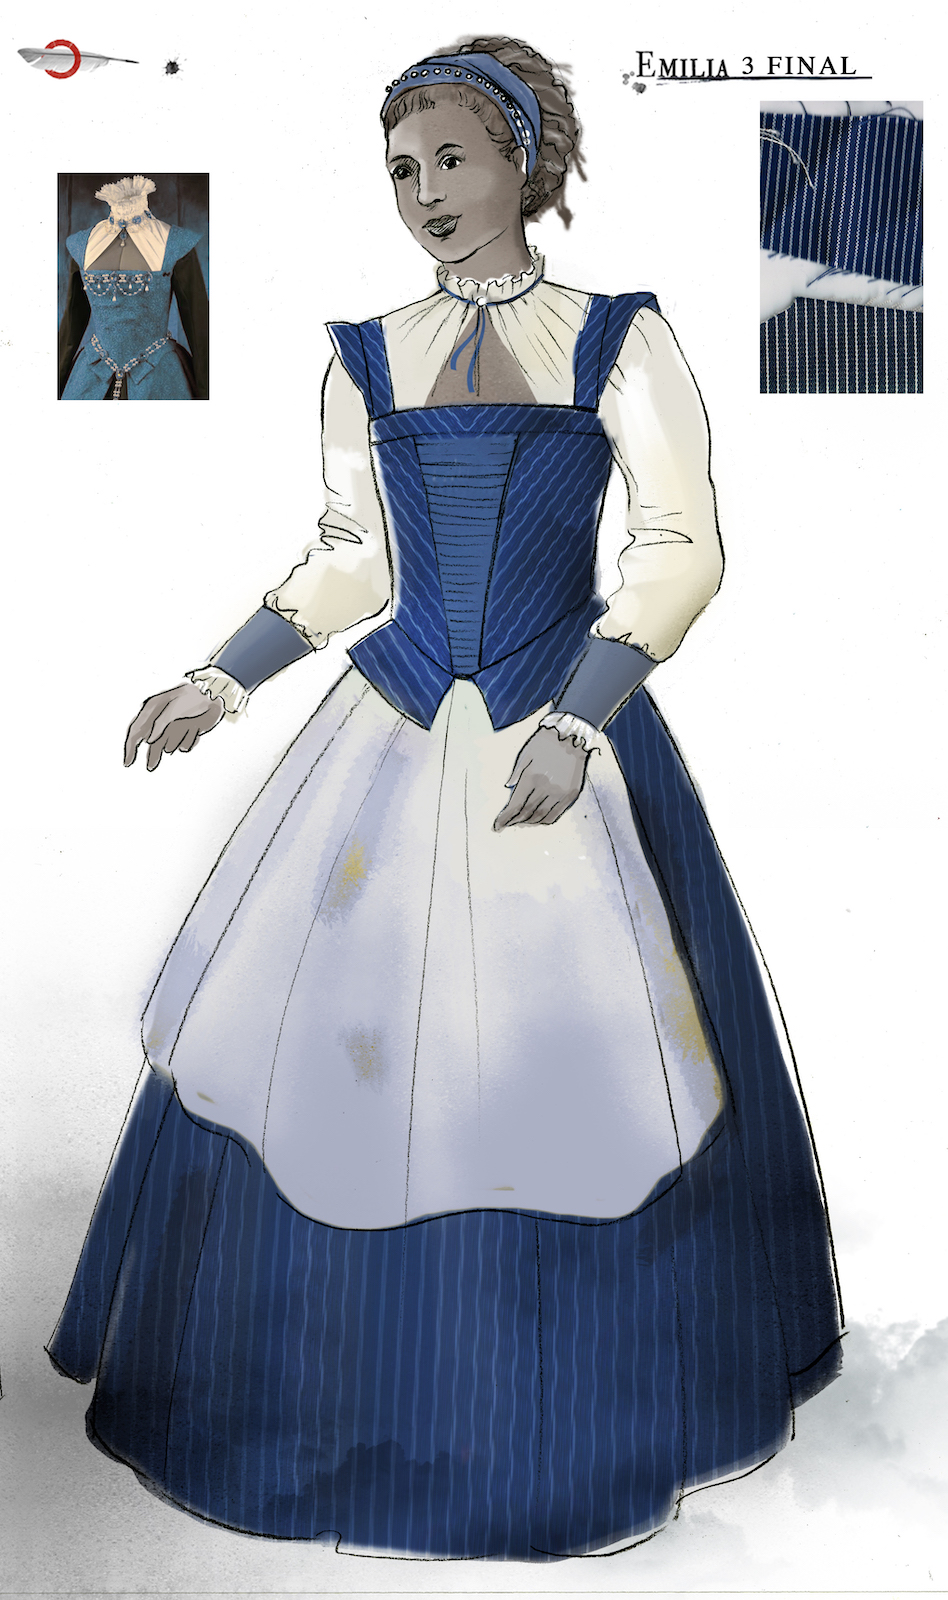 A costume sketch of a blue and white Elizabethan dress